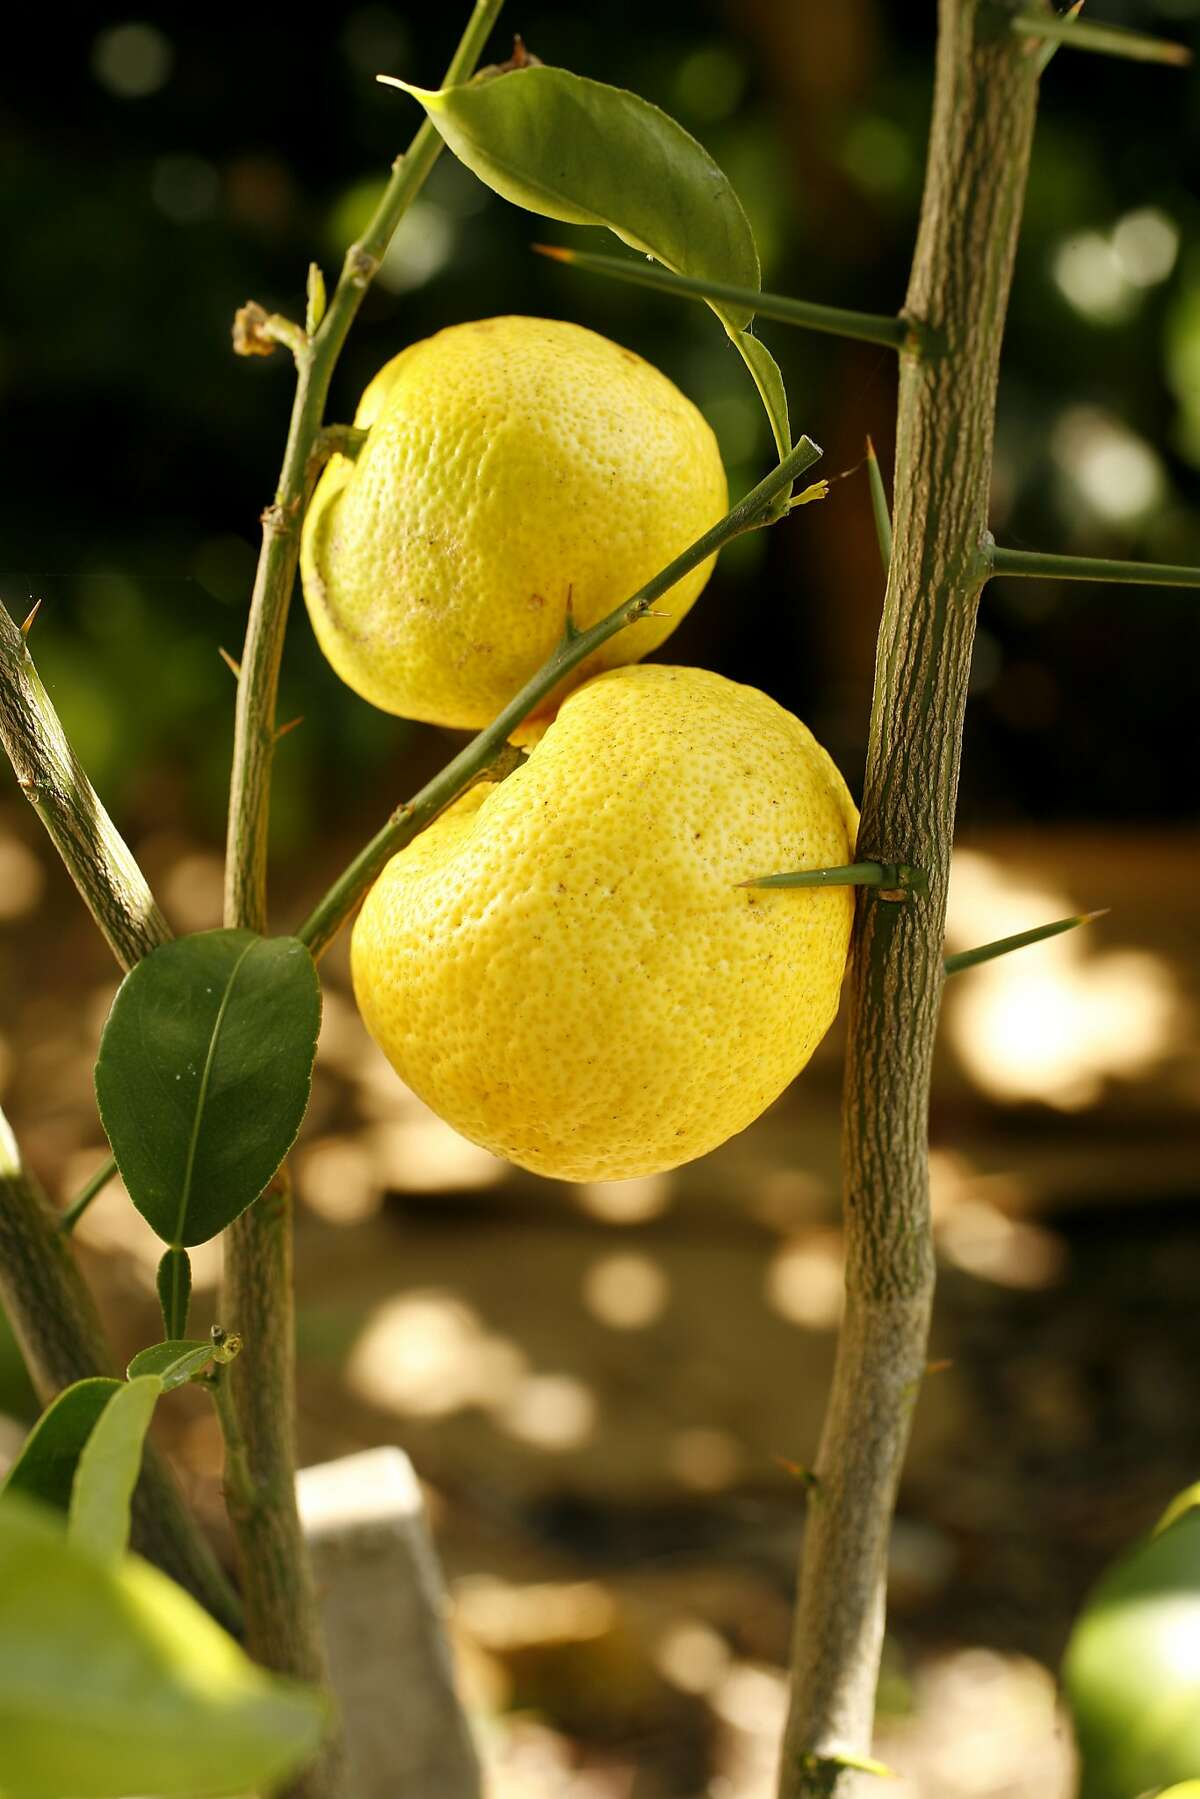 YUZU31_fruit_078_cl.JPG Photo of a Yuzu tree and it's fruit in Andy Powning's back yard. Craig Lee / The Chronicle